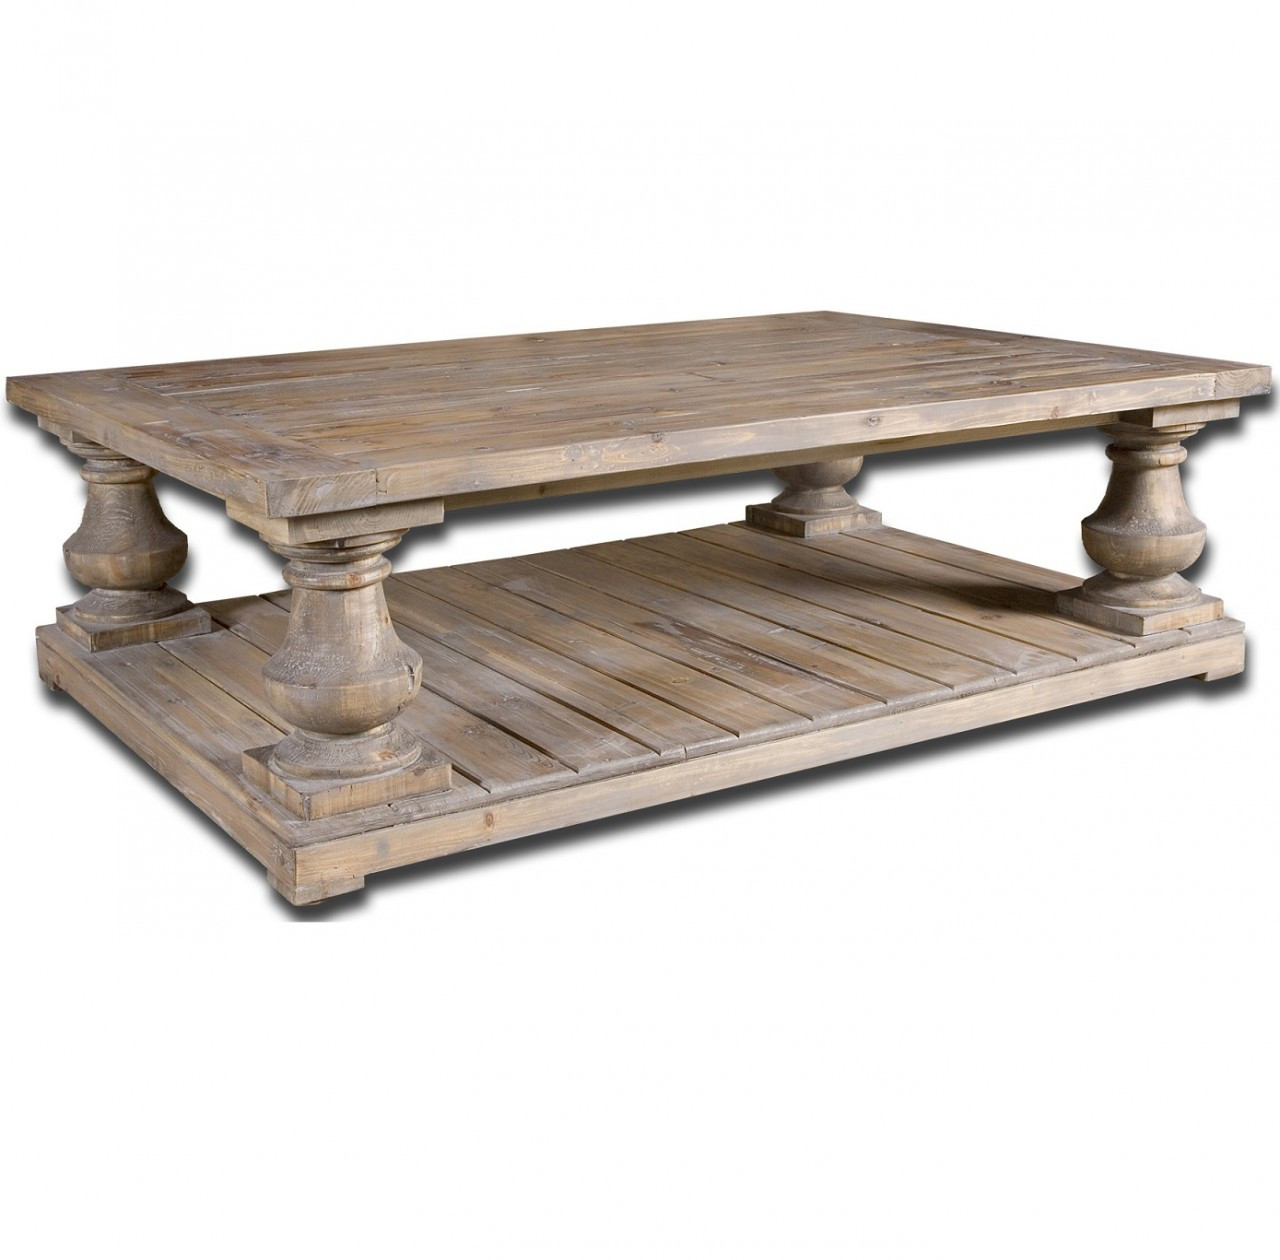 Salvaged wood rustic coffee table 60 zin home for Rustic coffee table